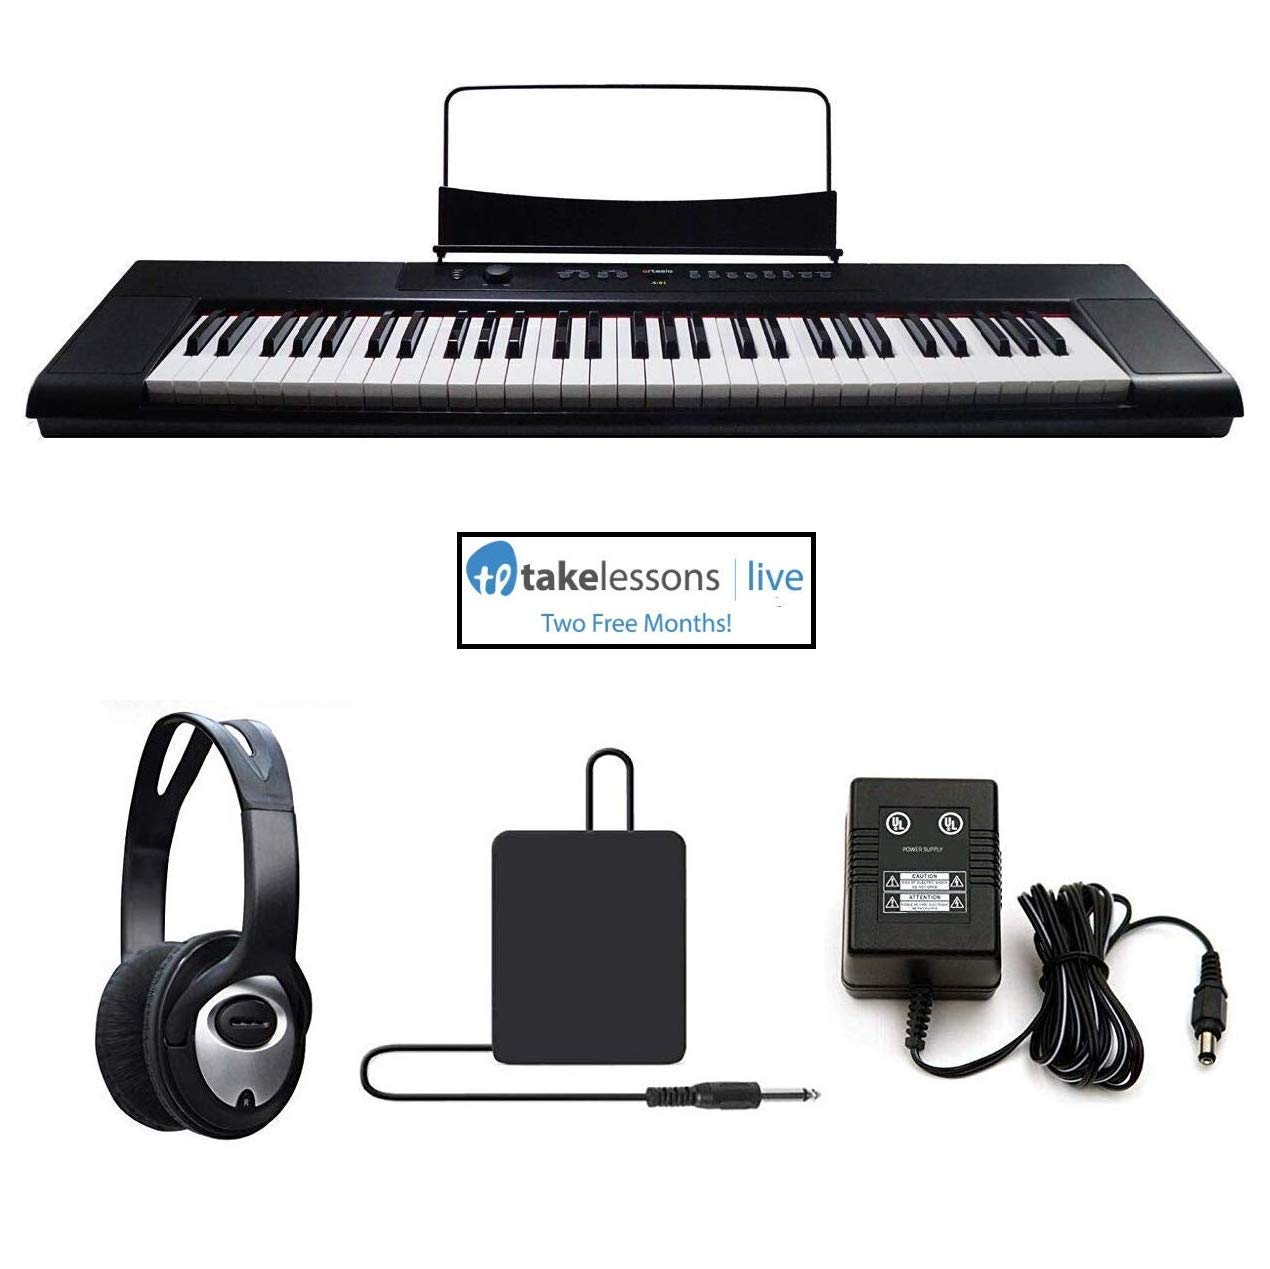 Artesia A-61, Digital Piano (Black) 61-Key with 8 Dynamic Voices with USB - Bundle